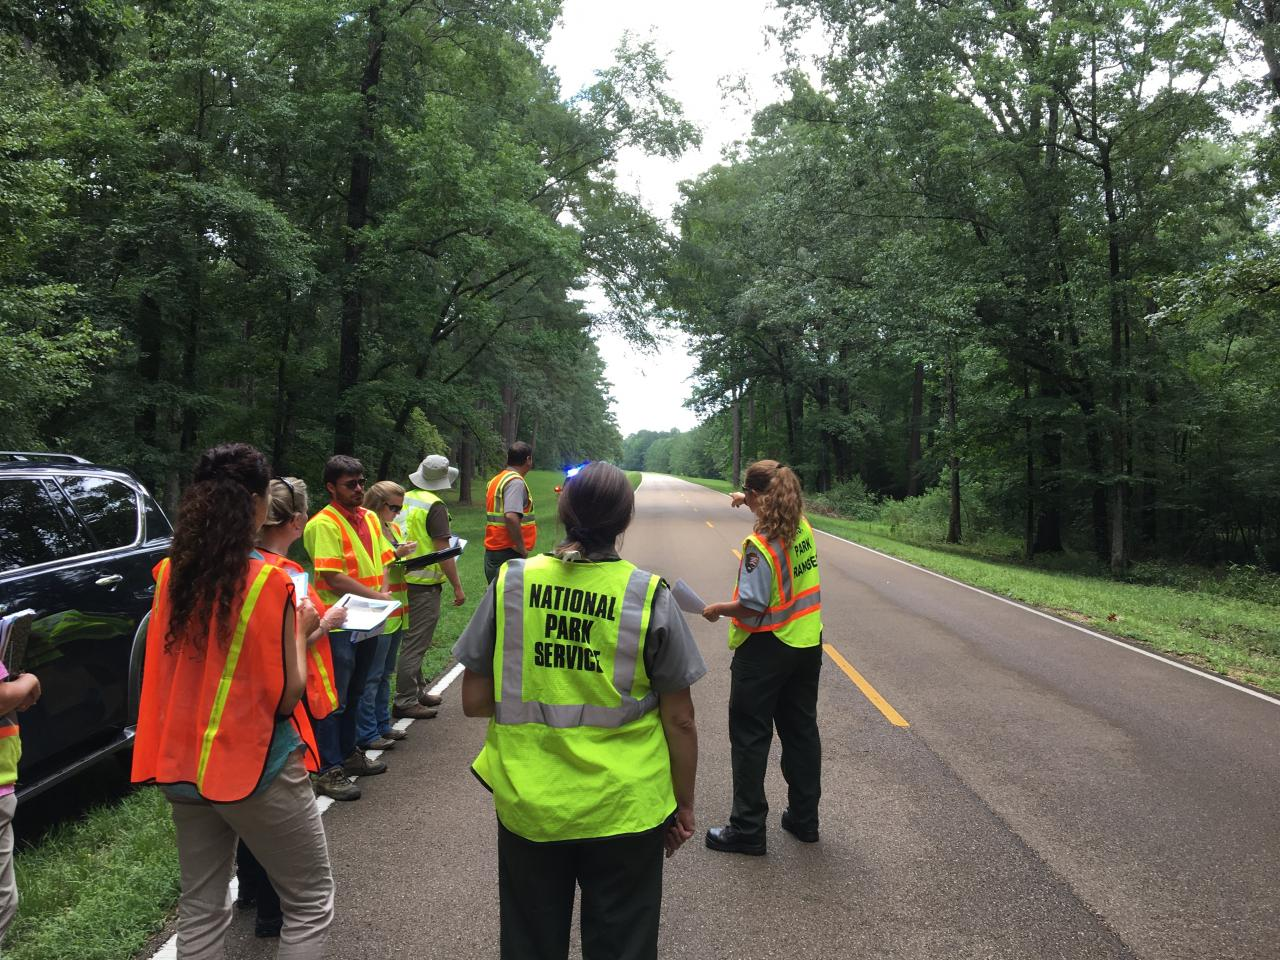 Eight people wearing orange and yellow safety vests stand with clipboards along a road in a national park.